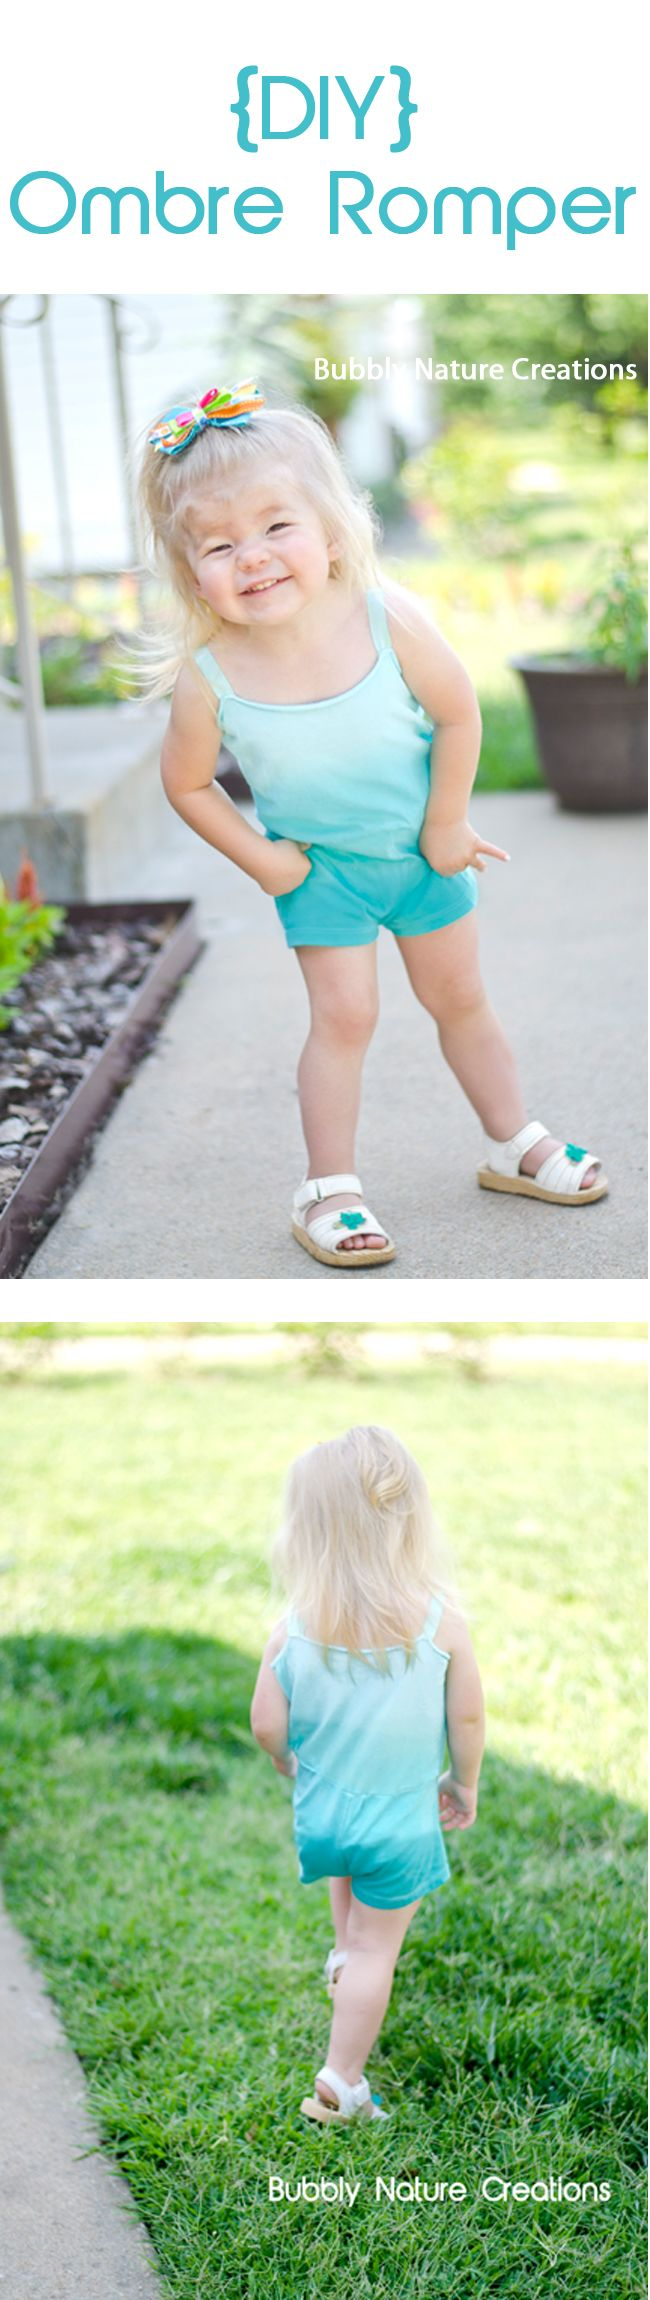 DIY Ombre Romper by @Rachel @ Bubbly Nature Creations